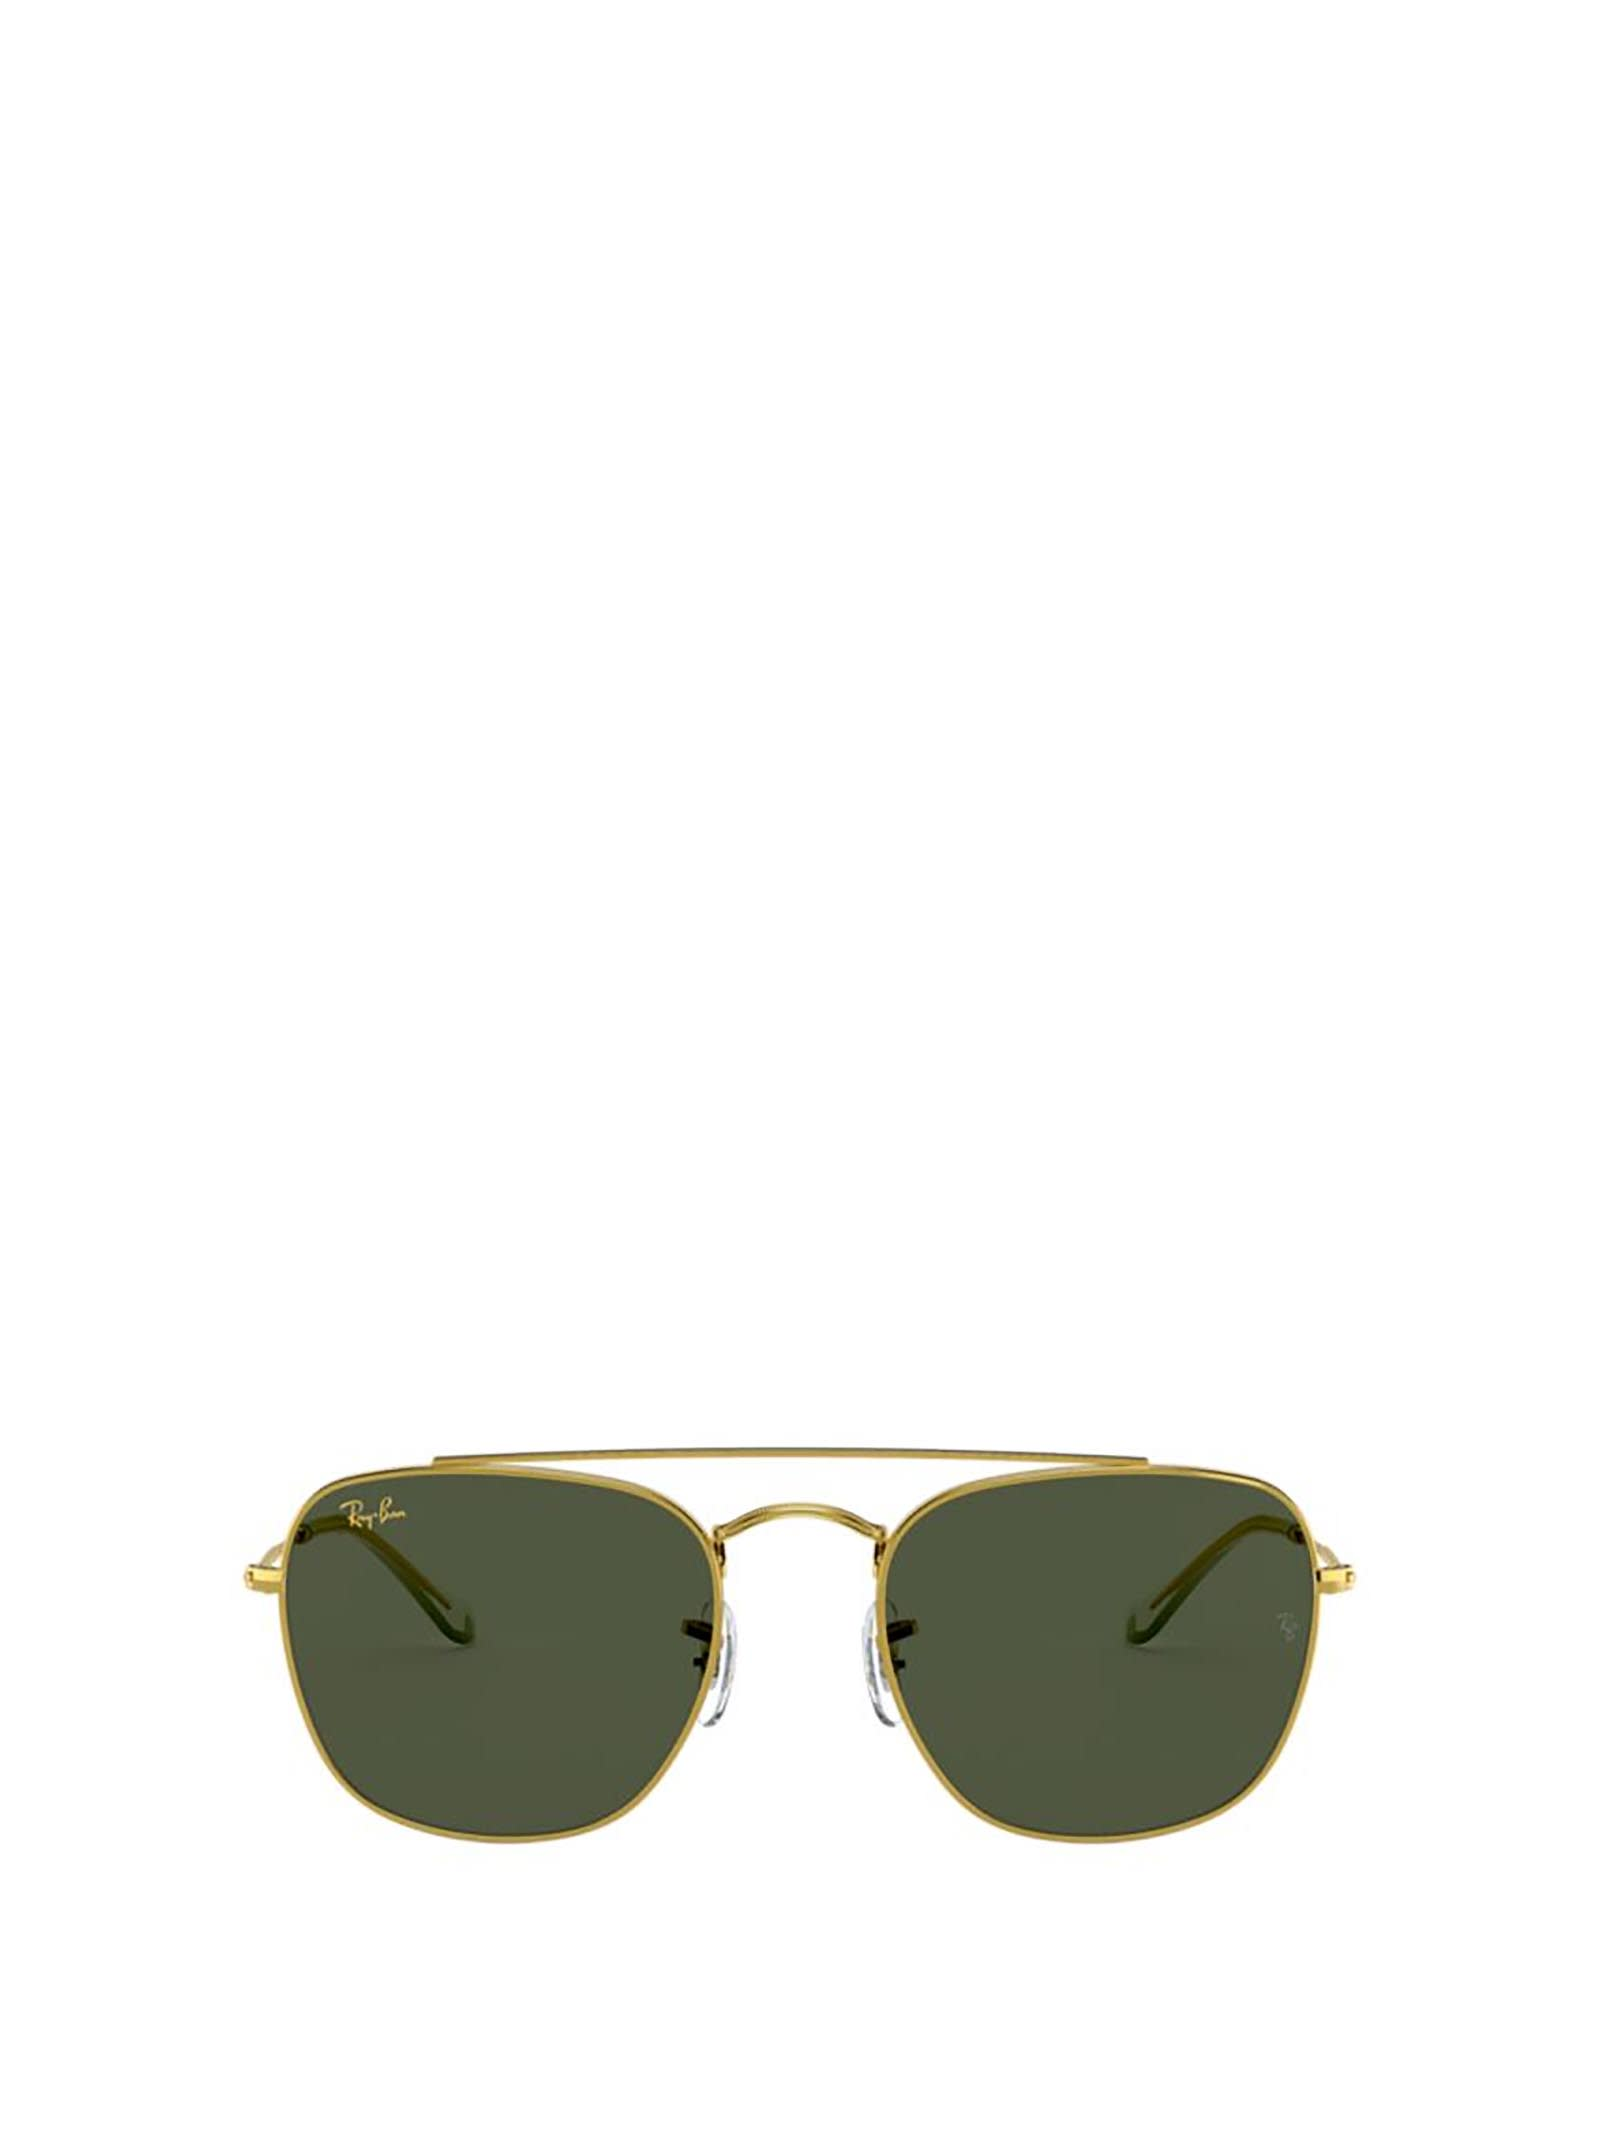 Ray-Ban Ray-ban Rb3557 Legend Gold Sunglasses